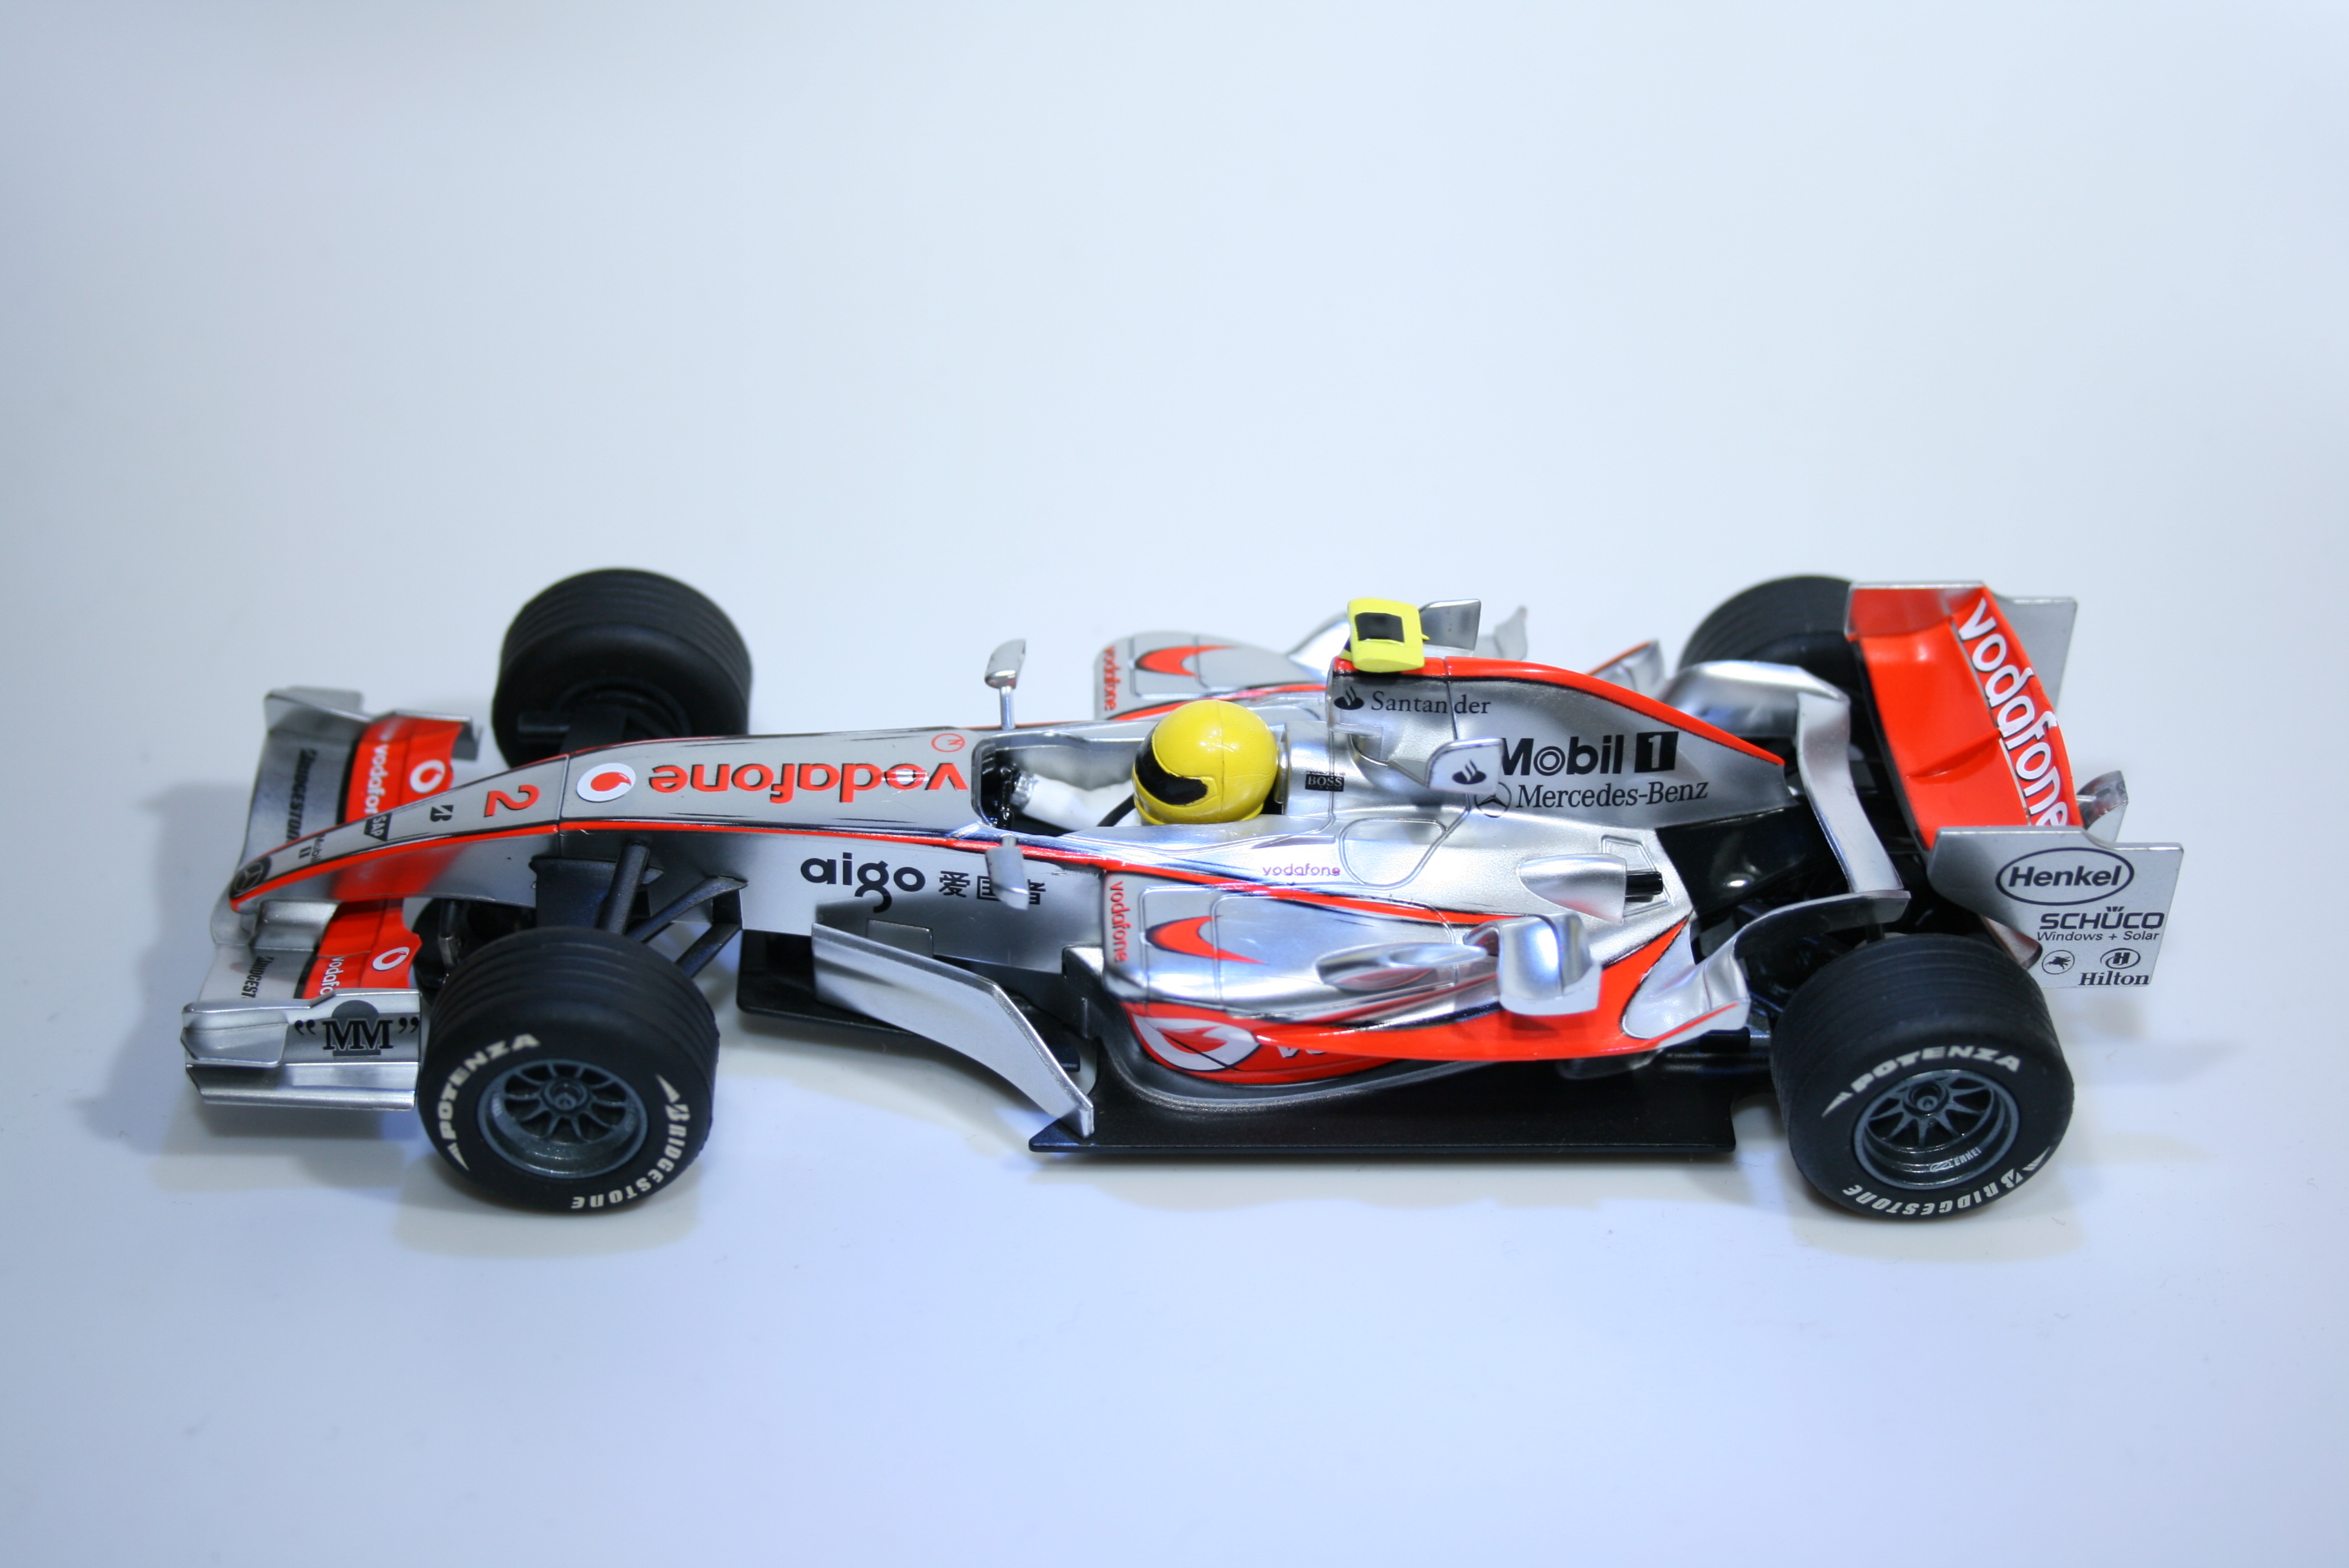 332 Mclaren MP4/22 2007 L Hamilton Scalextric C2837 2007 Boxed